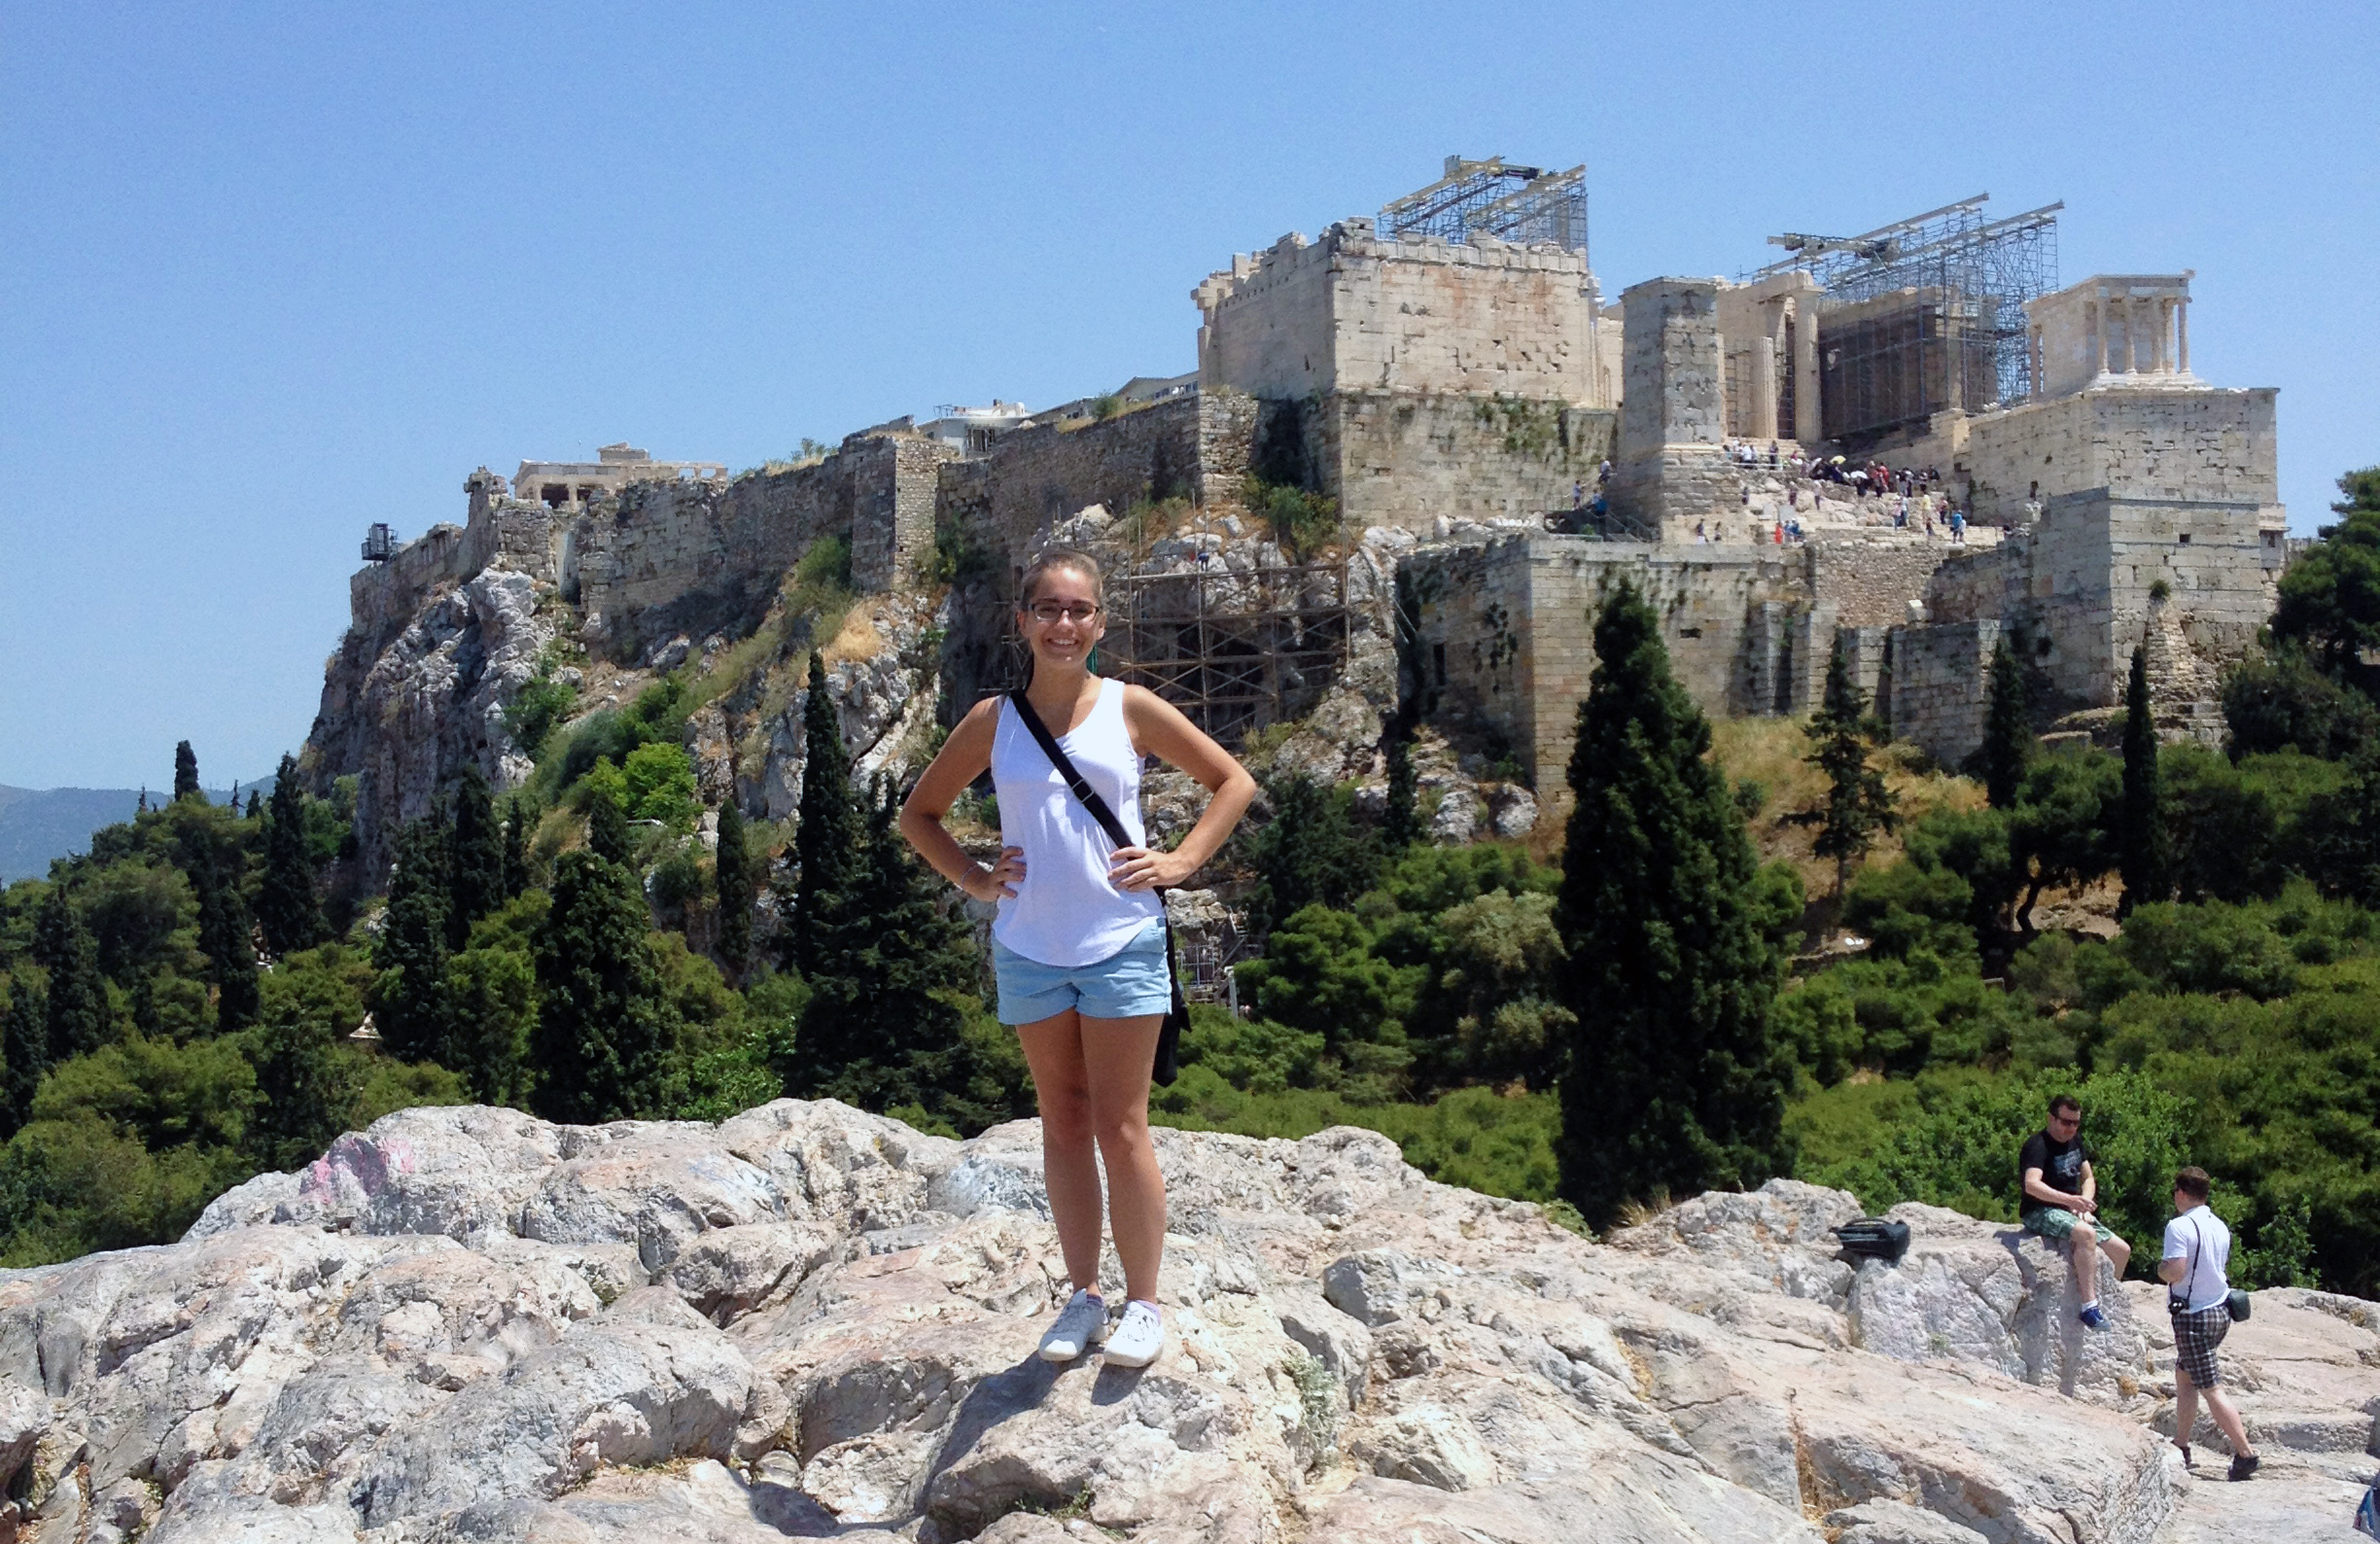 Esther in front of Greek architecture